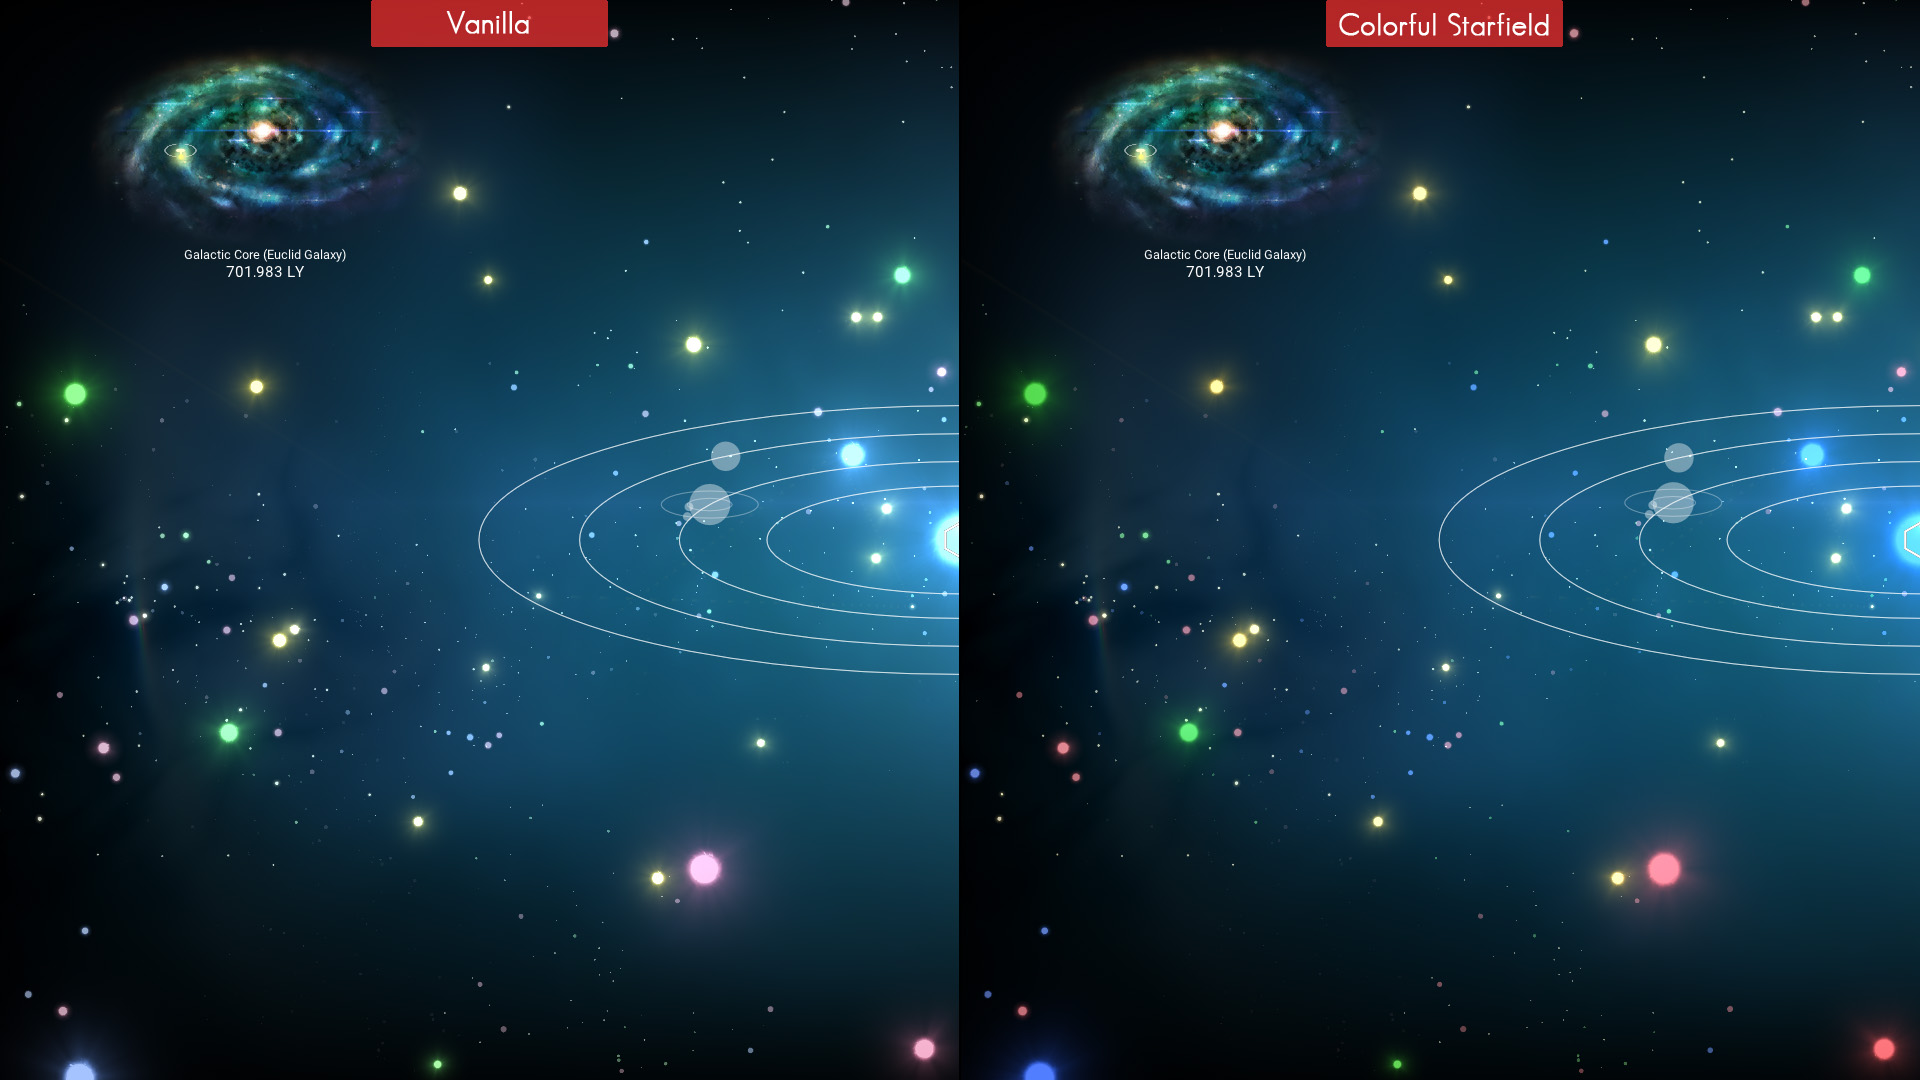 Colorful Starfields 2.0